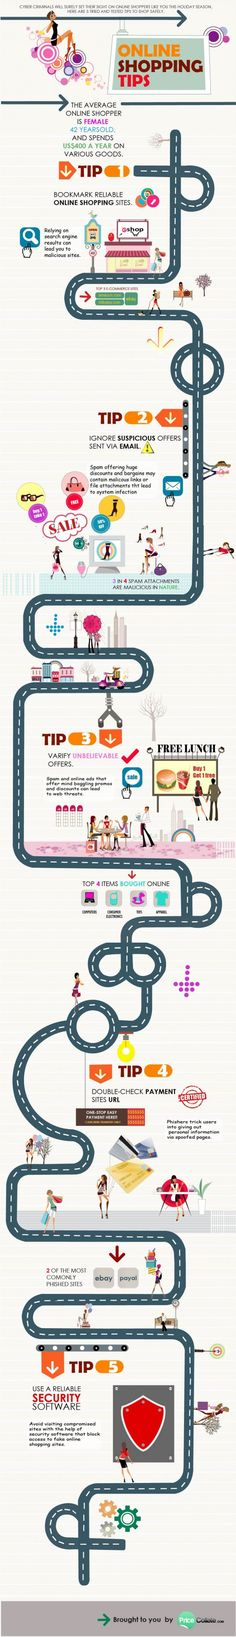 INFOGRAPHIC: 5 TIPS ON SHOPPING ONLINE